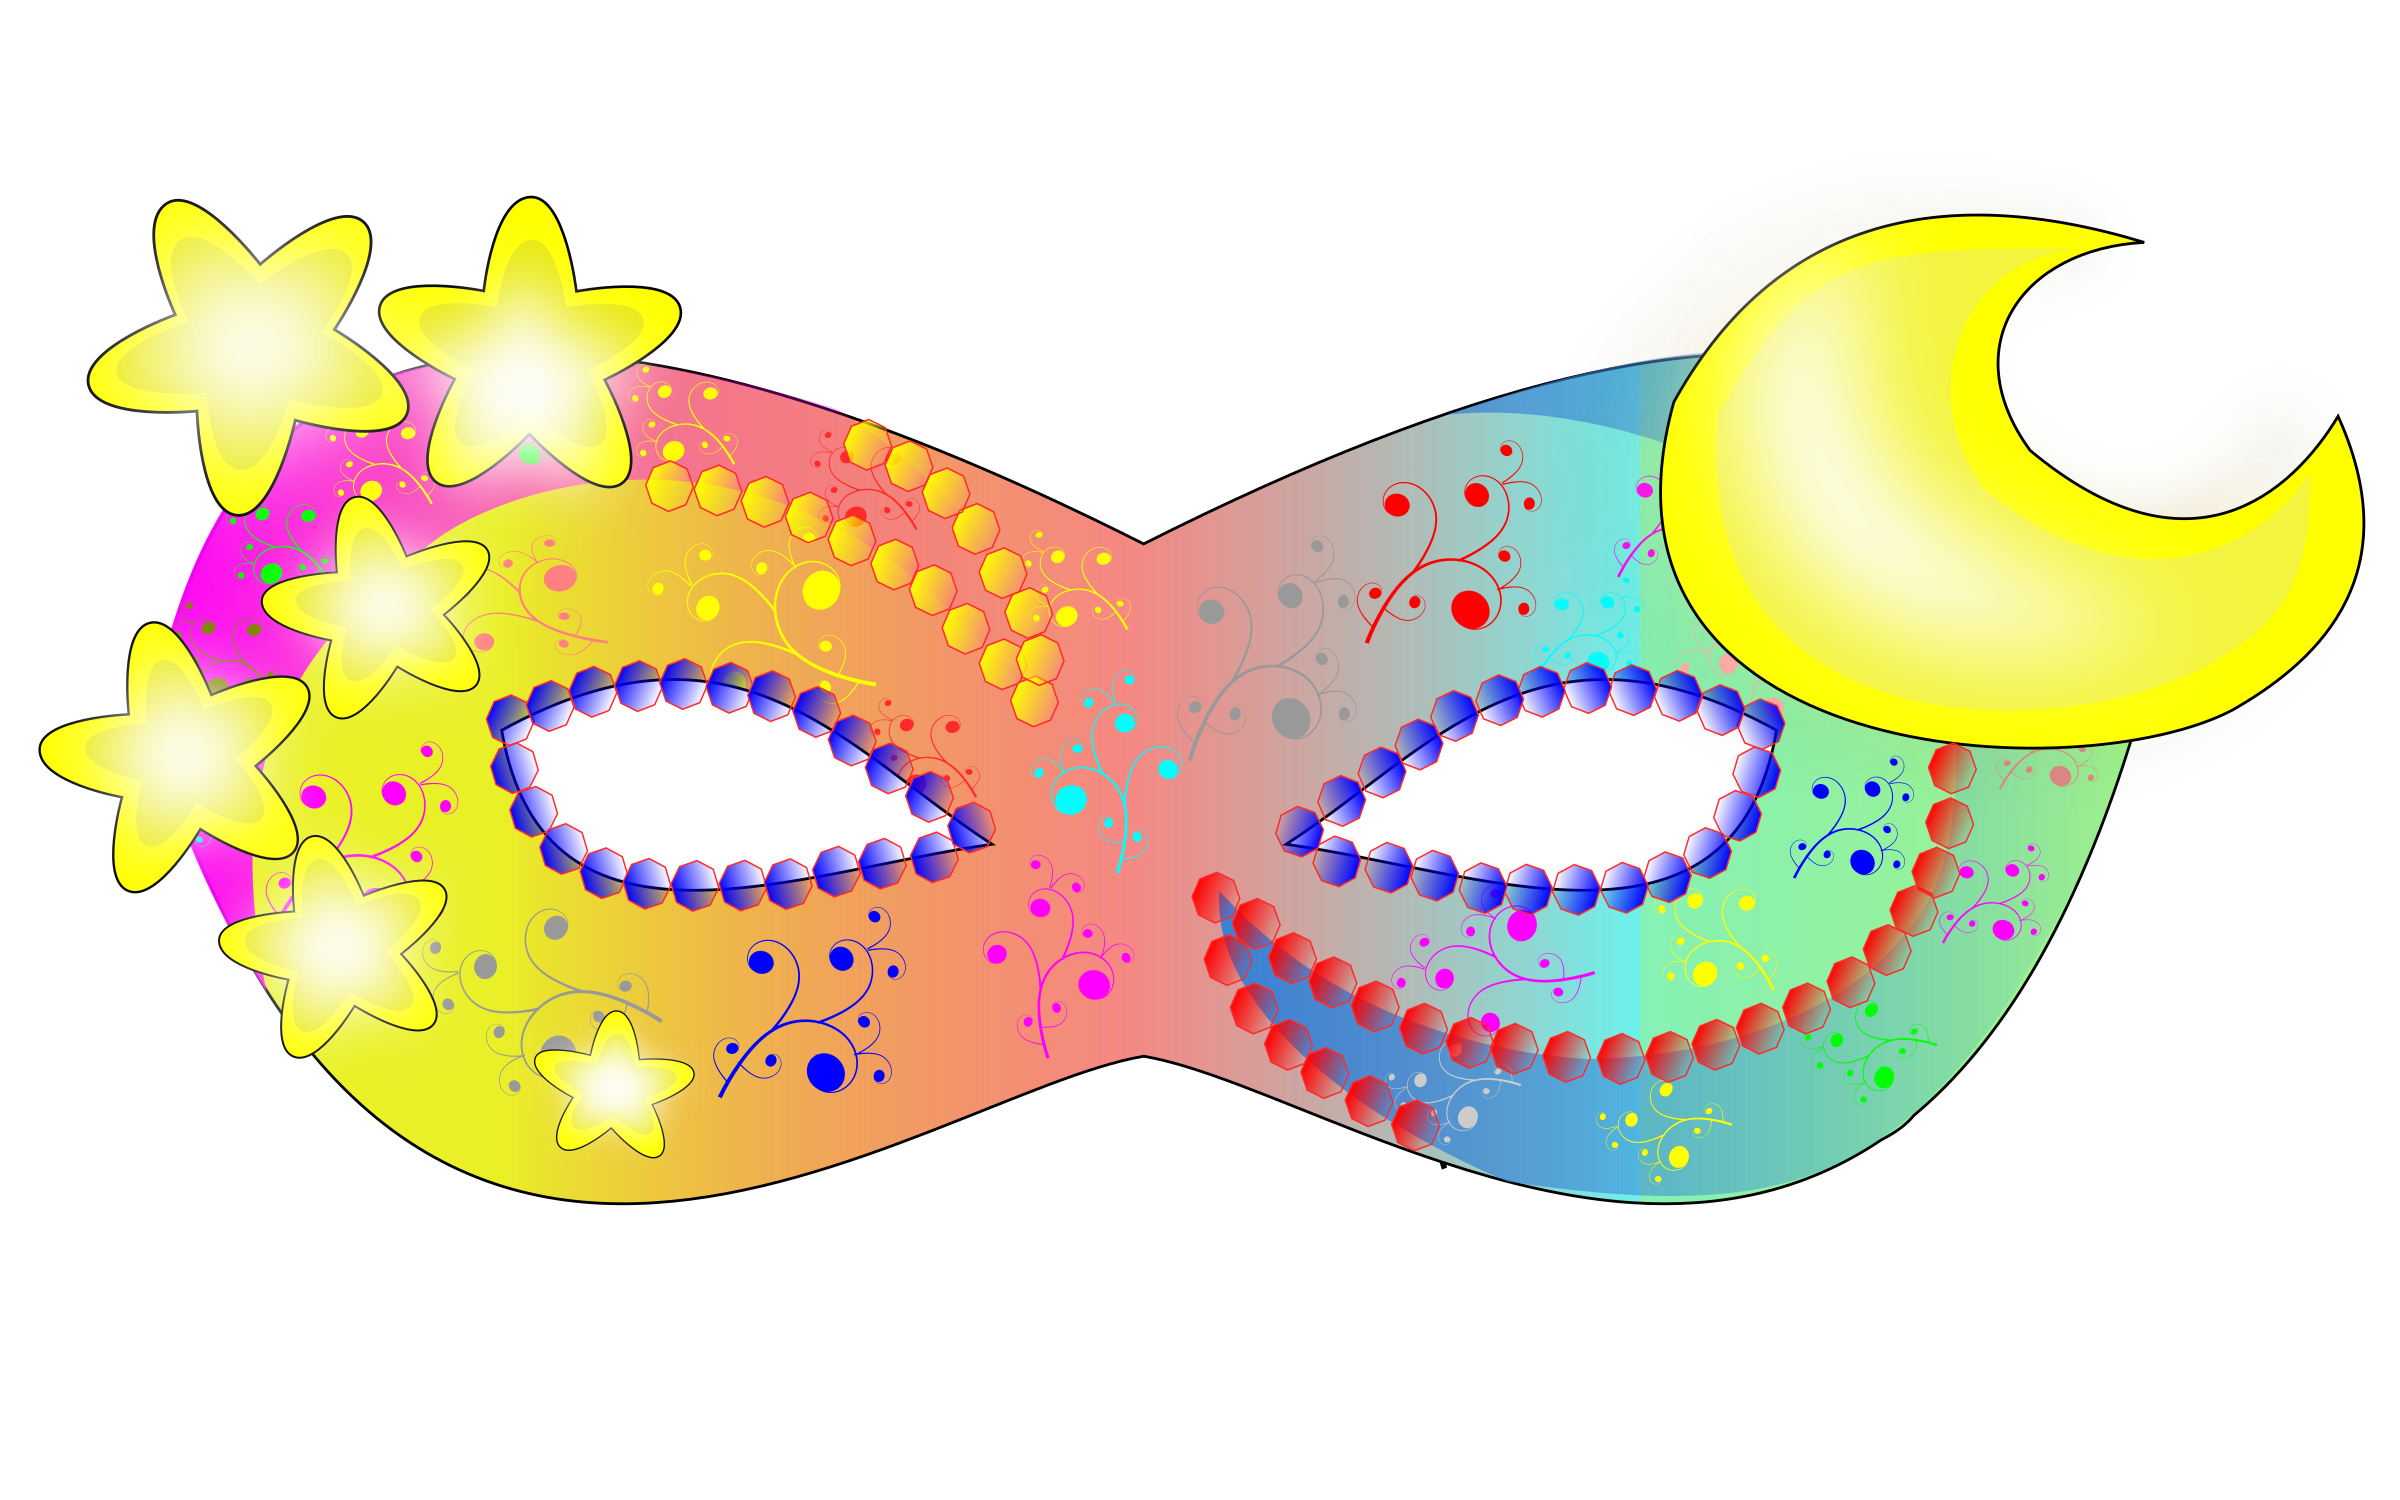 Mask by inkscapeforum.it